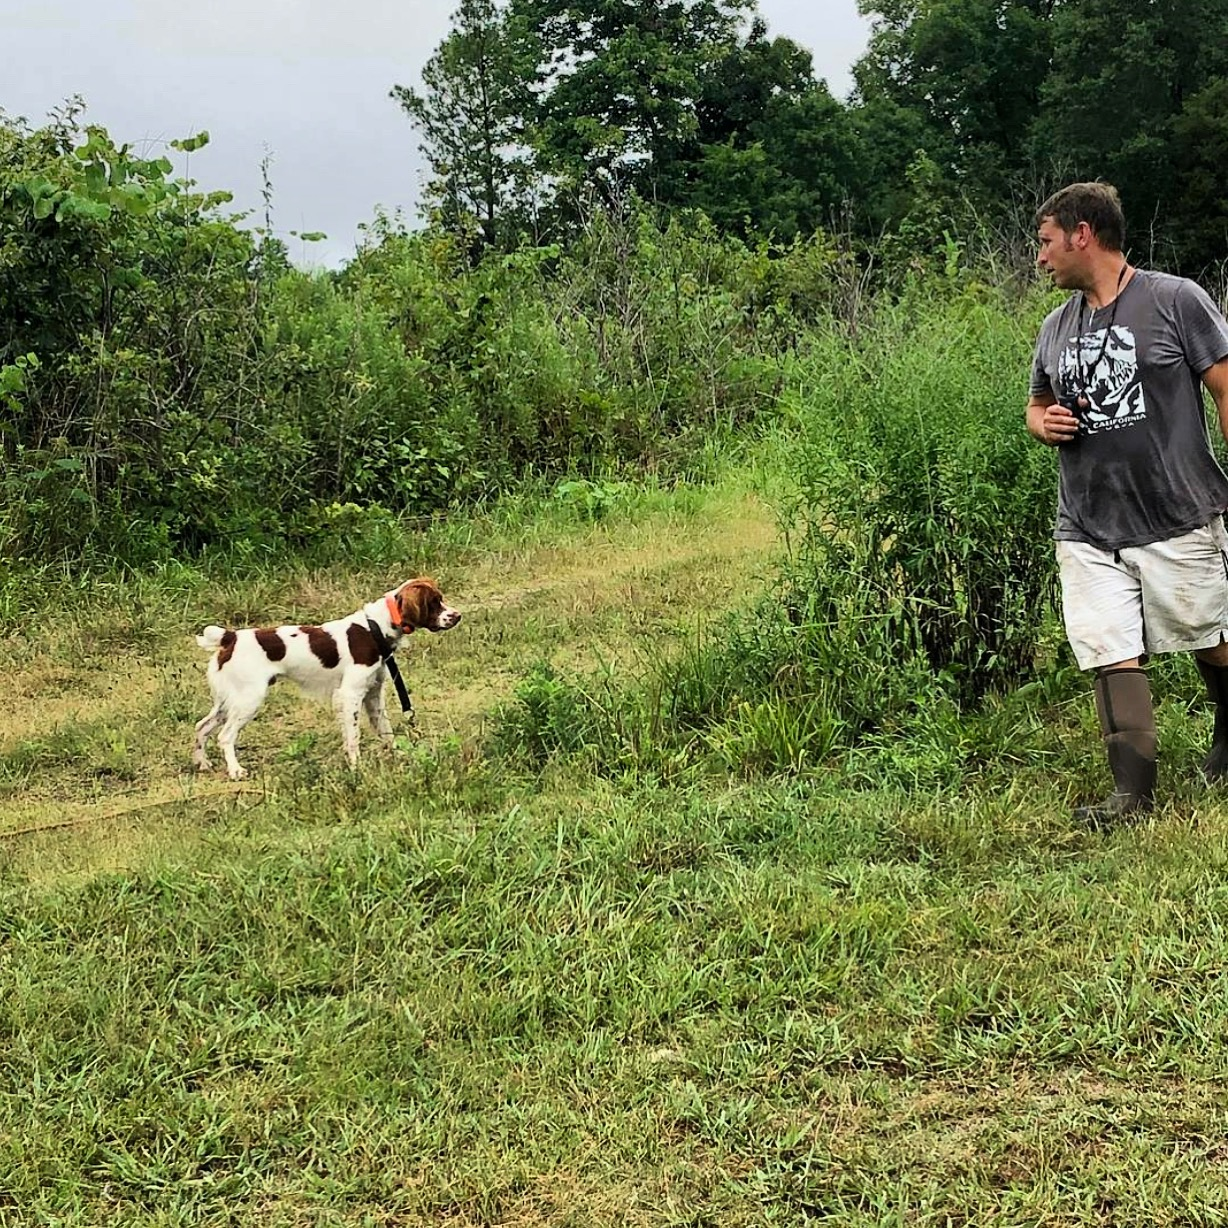 Lincoln and Grayson working on steadiness on launcher birds.